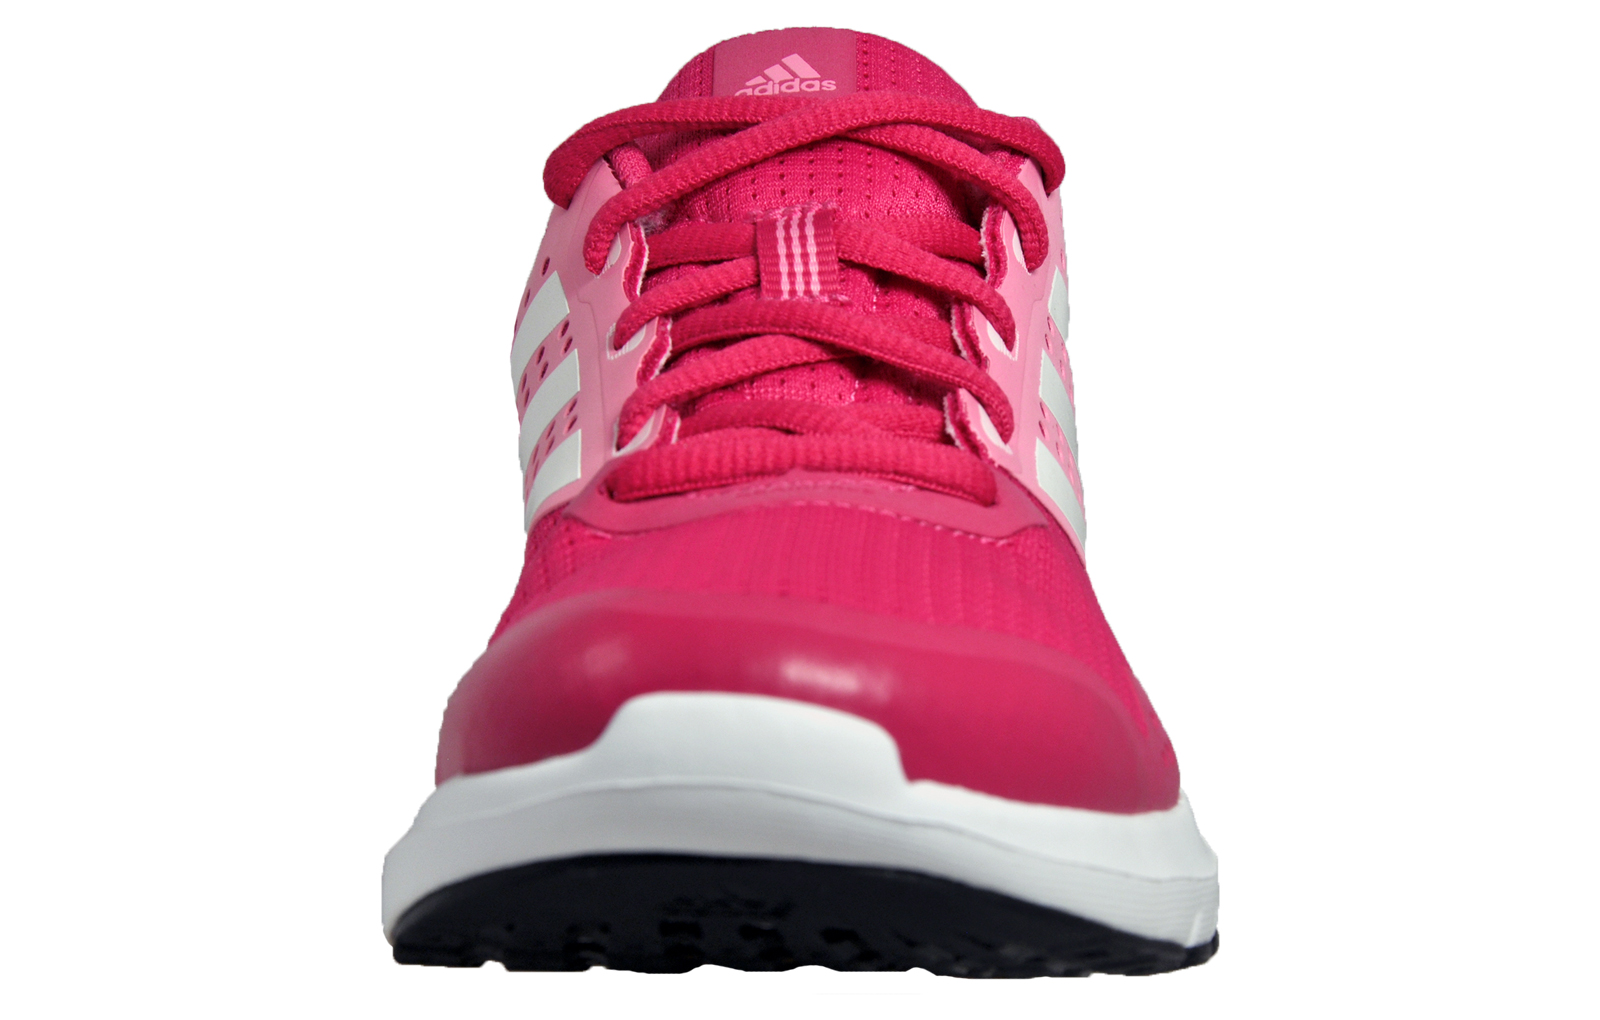 low priced 95ec4 2fb68 Adidas Duramo 7 Womens Running Shoes Fitness Gym Workout Trainers Pink